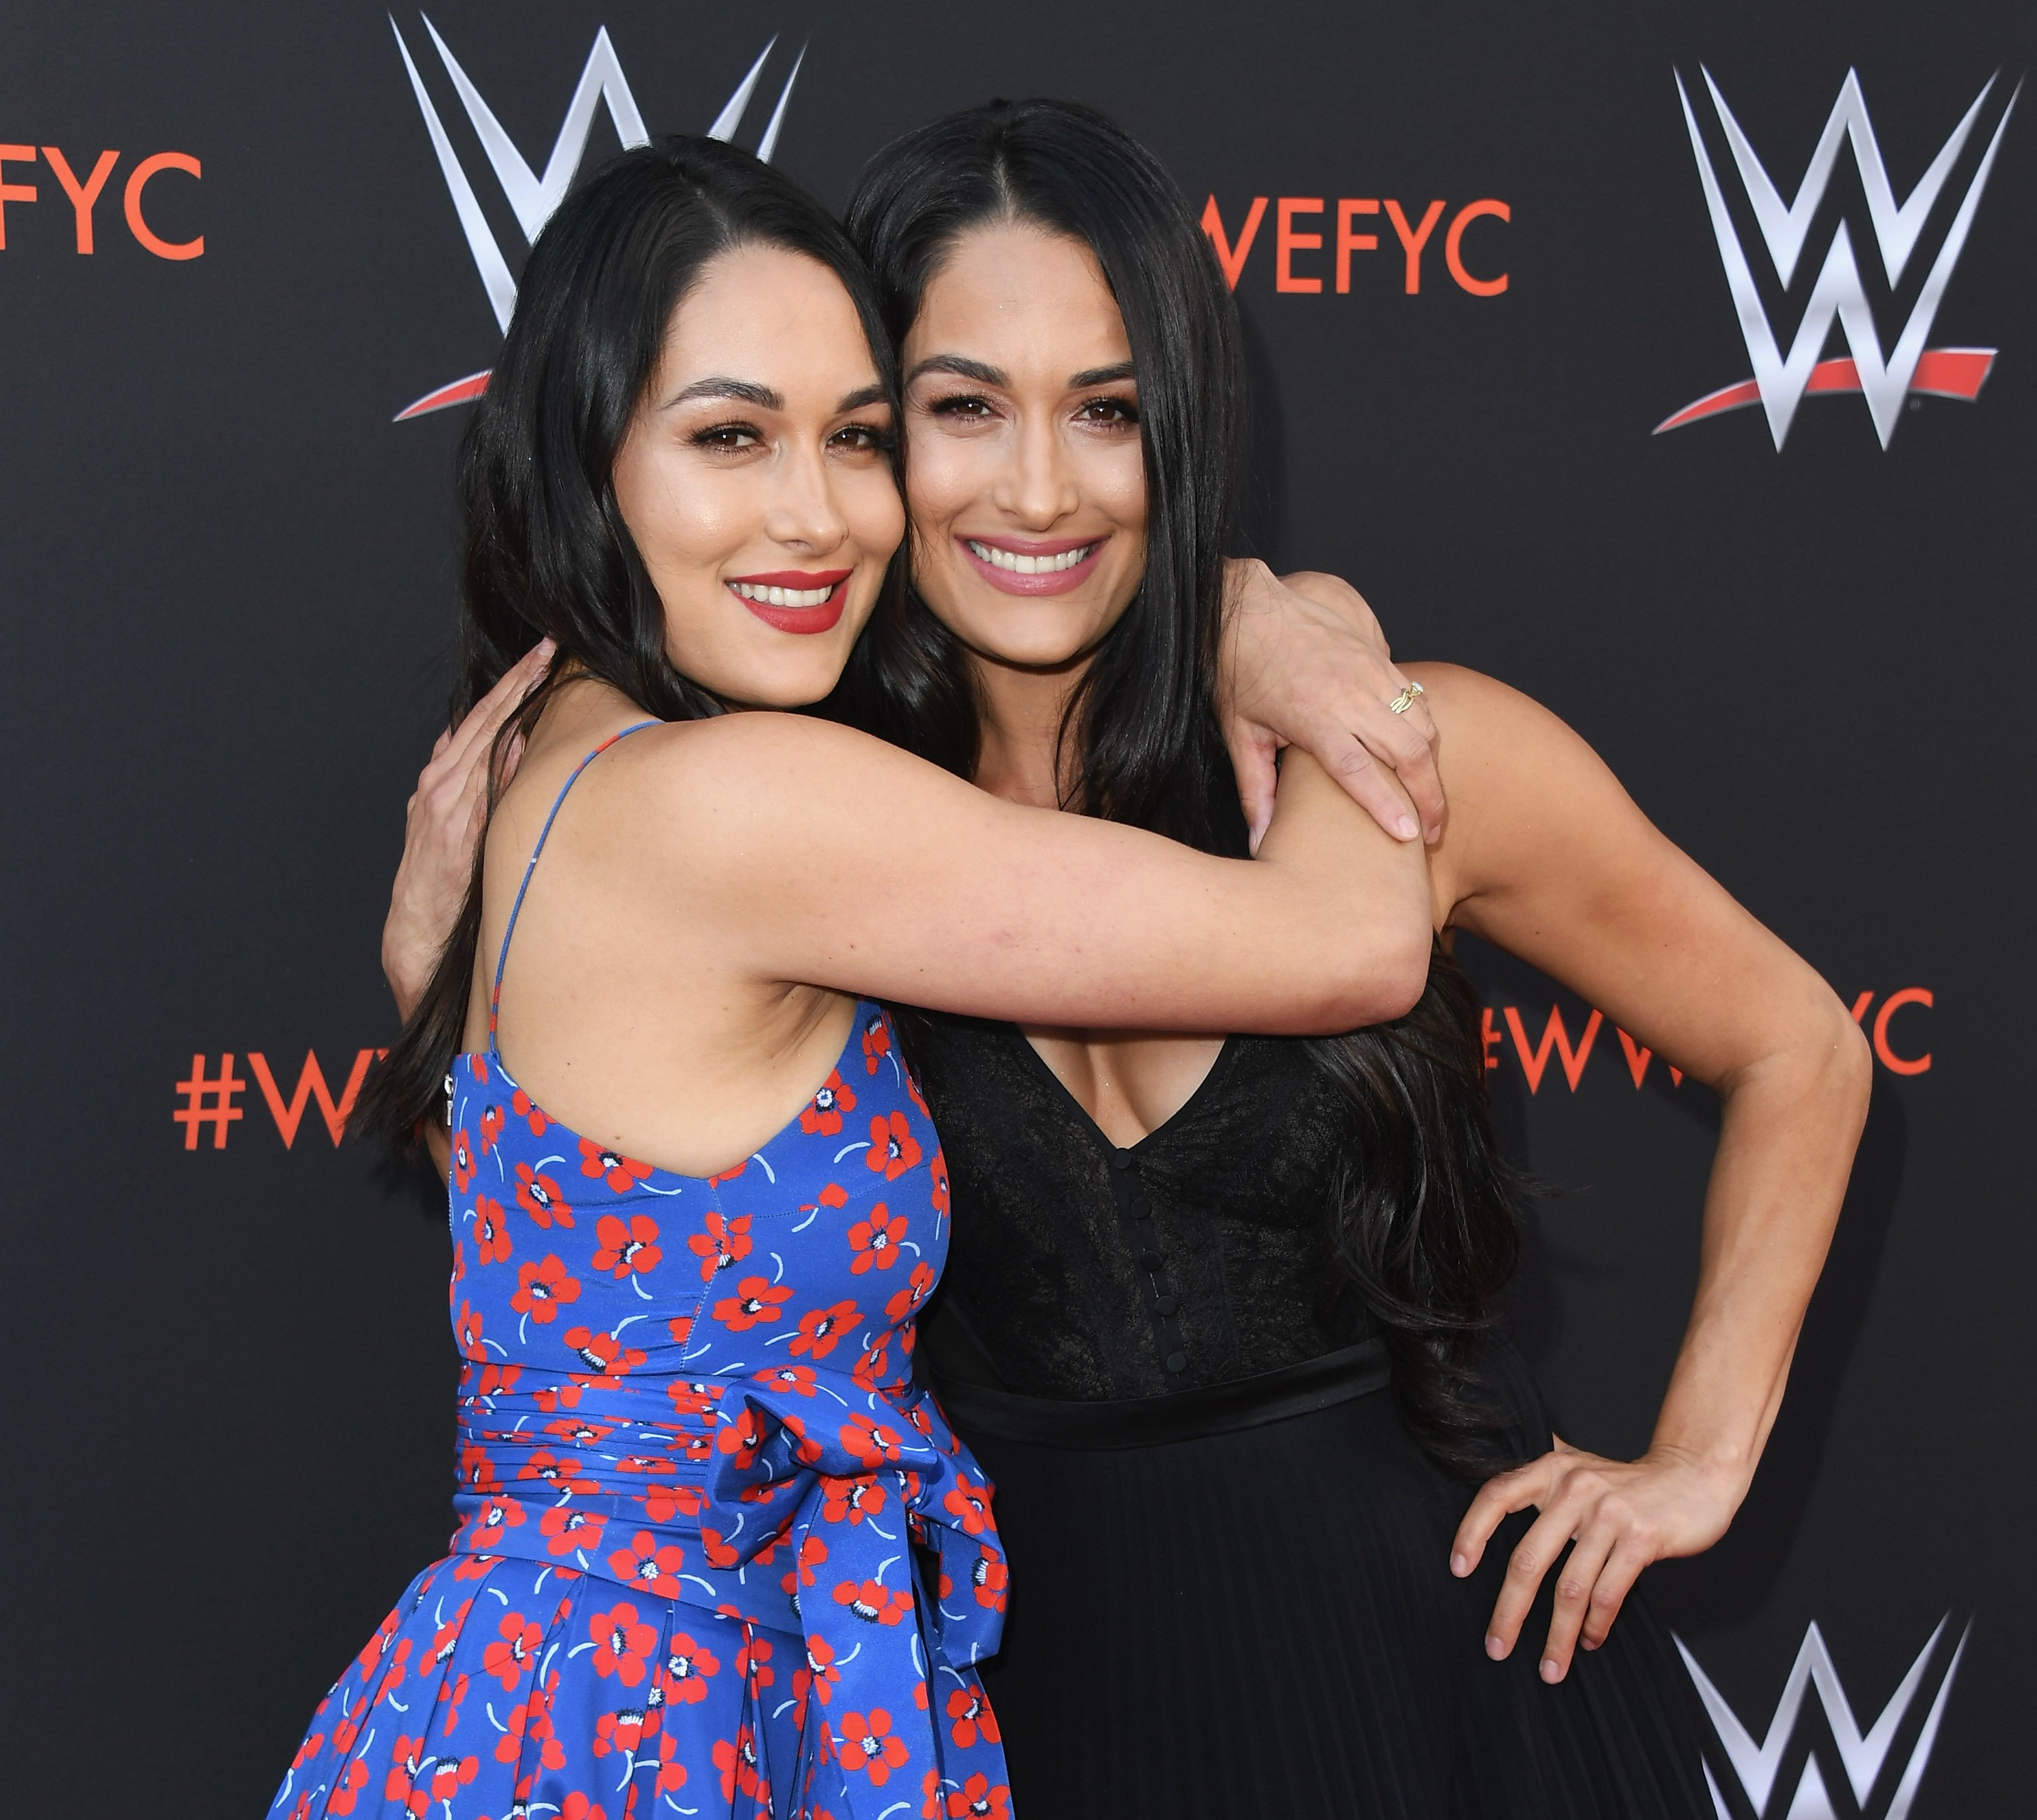 Nikki Bella and Brie Bella during a 2018 WWE event in California. | Photo: Getty Images